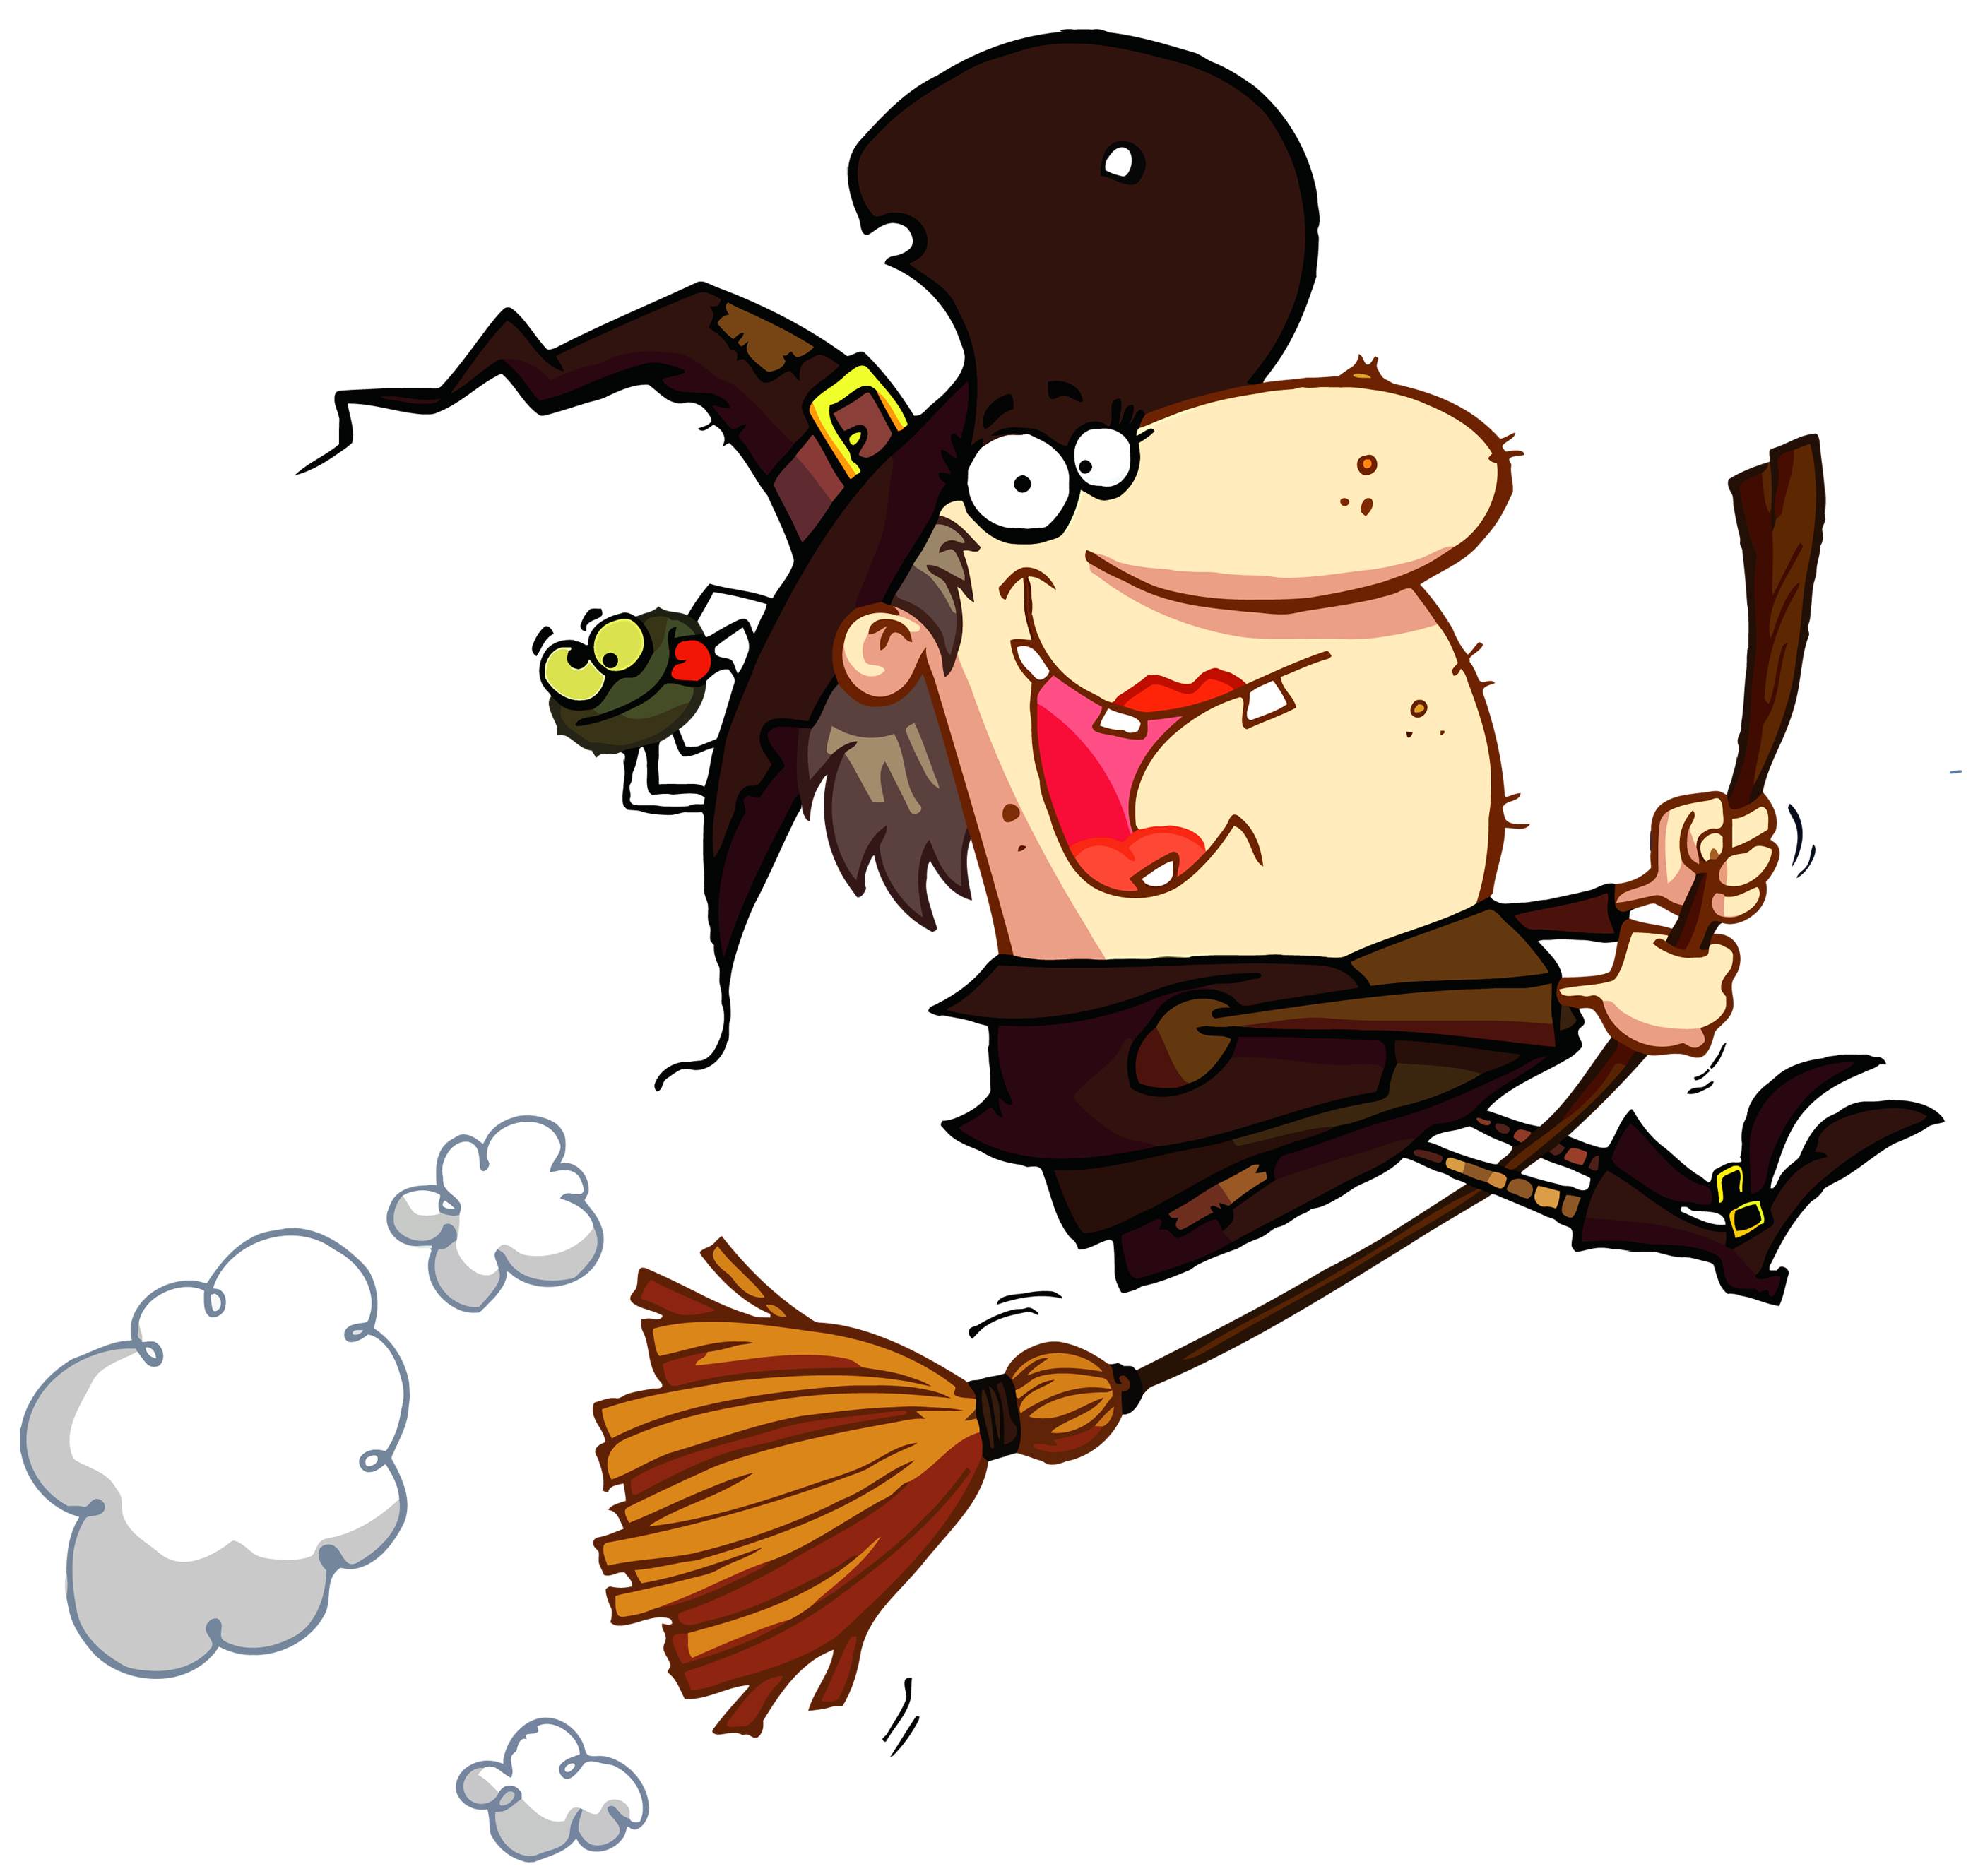 Primitive halloween clipart jpg royalty free library Funny Halloween Witch | Events | Pinterest | Clipart gallery ... jpg royalty free library